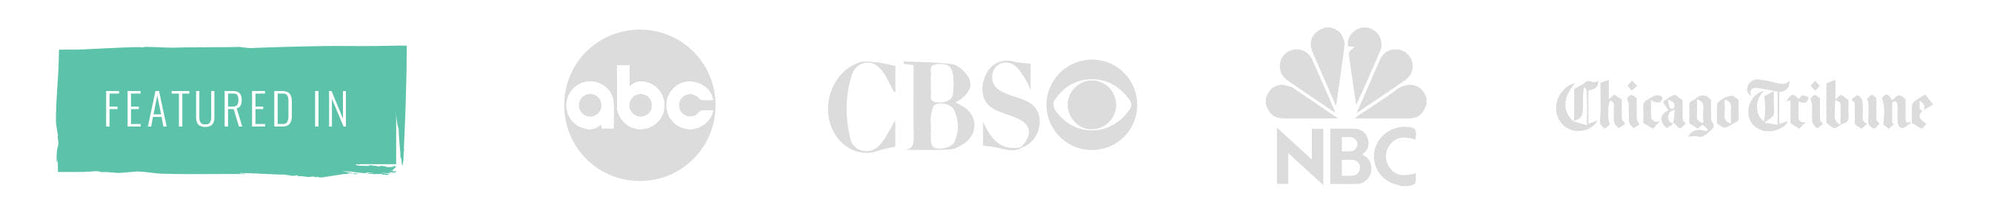 Abc, CBS, NBC,Chicago tribune Featured in